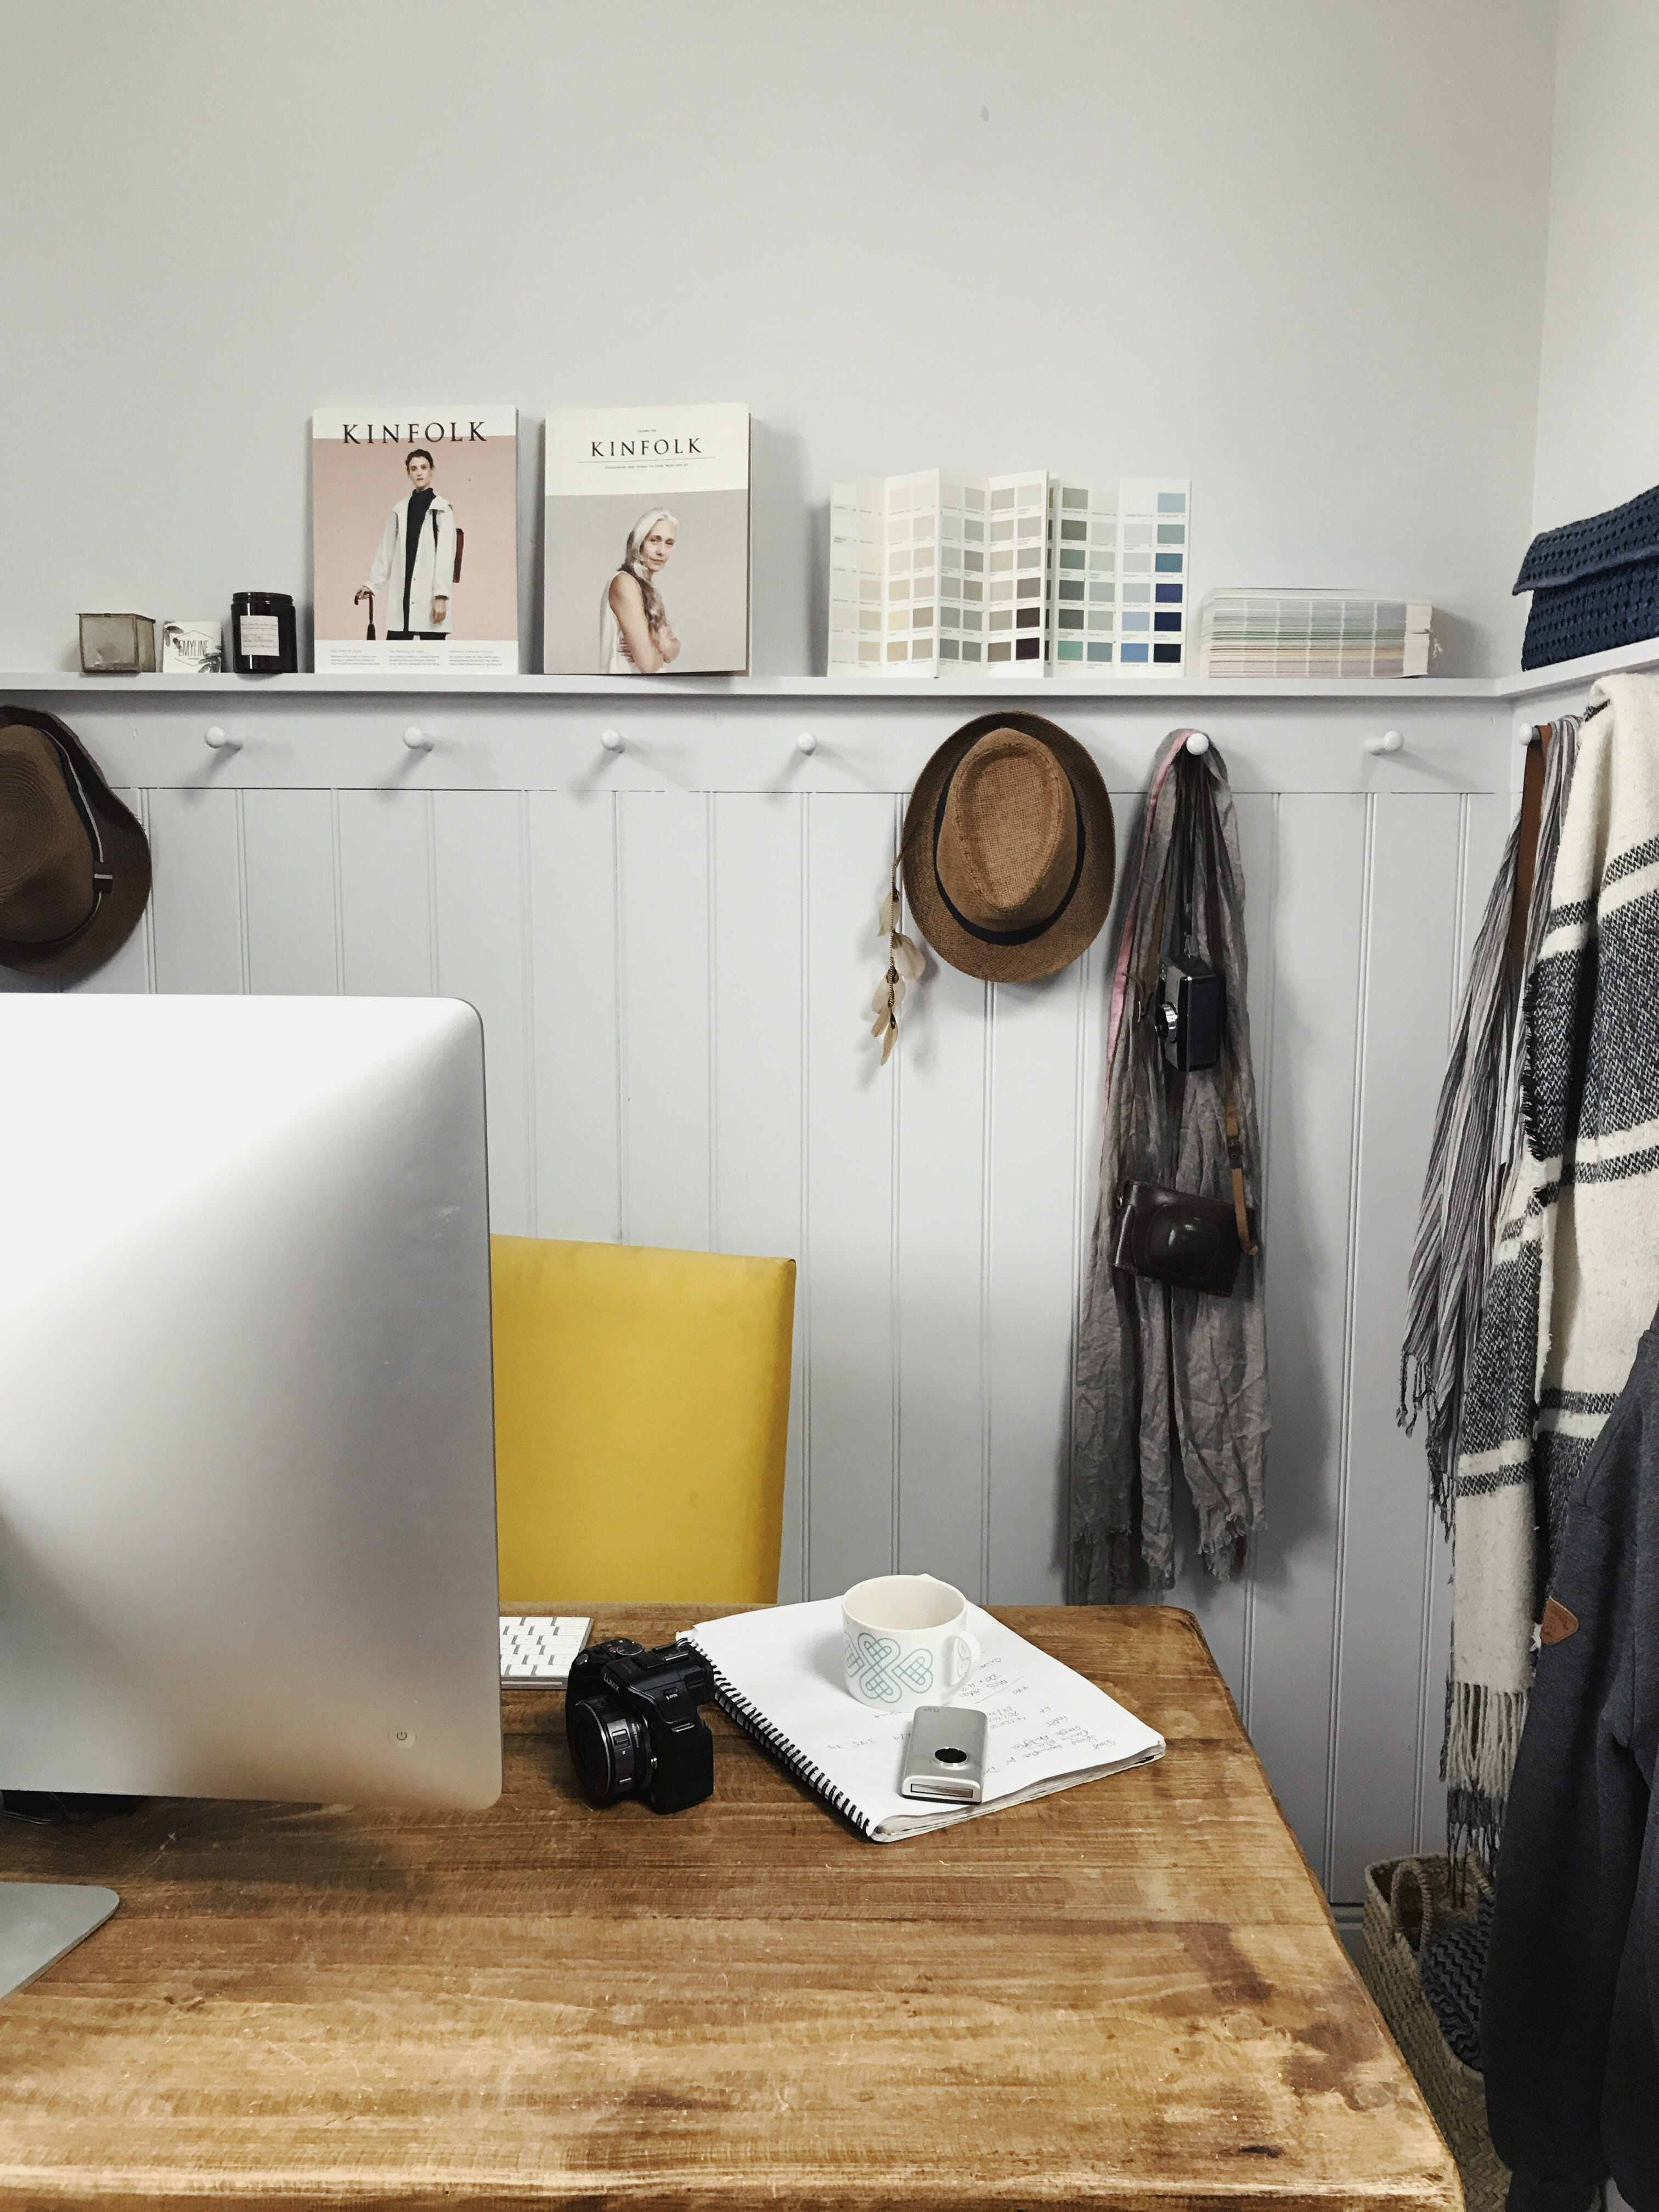 Quoting as a freelance creative: desk with computer screen and styled shelving in the background